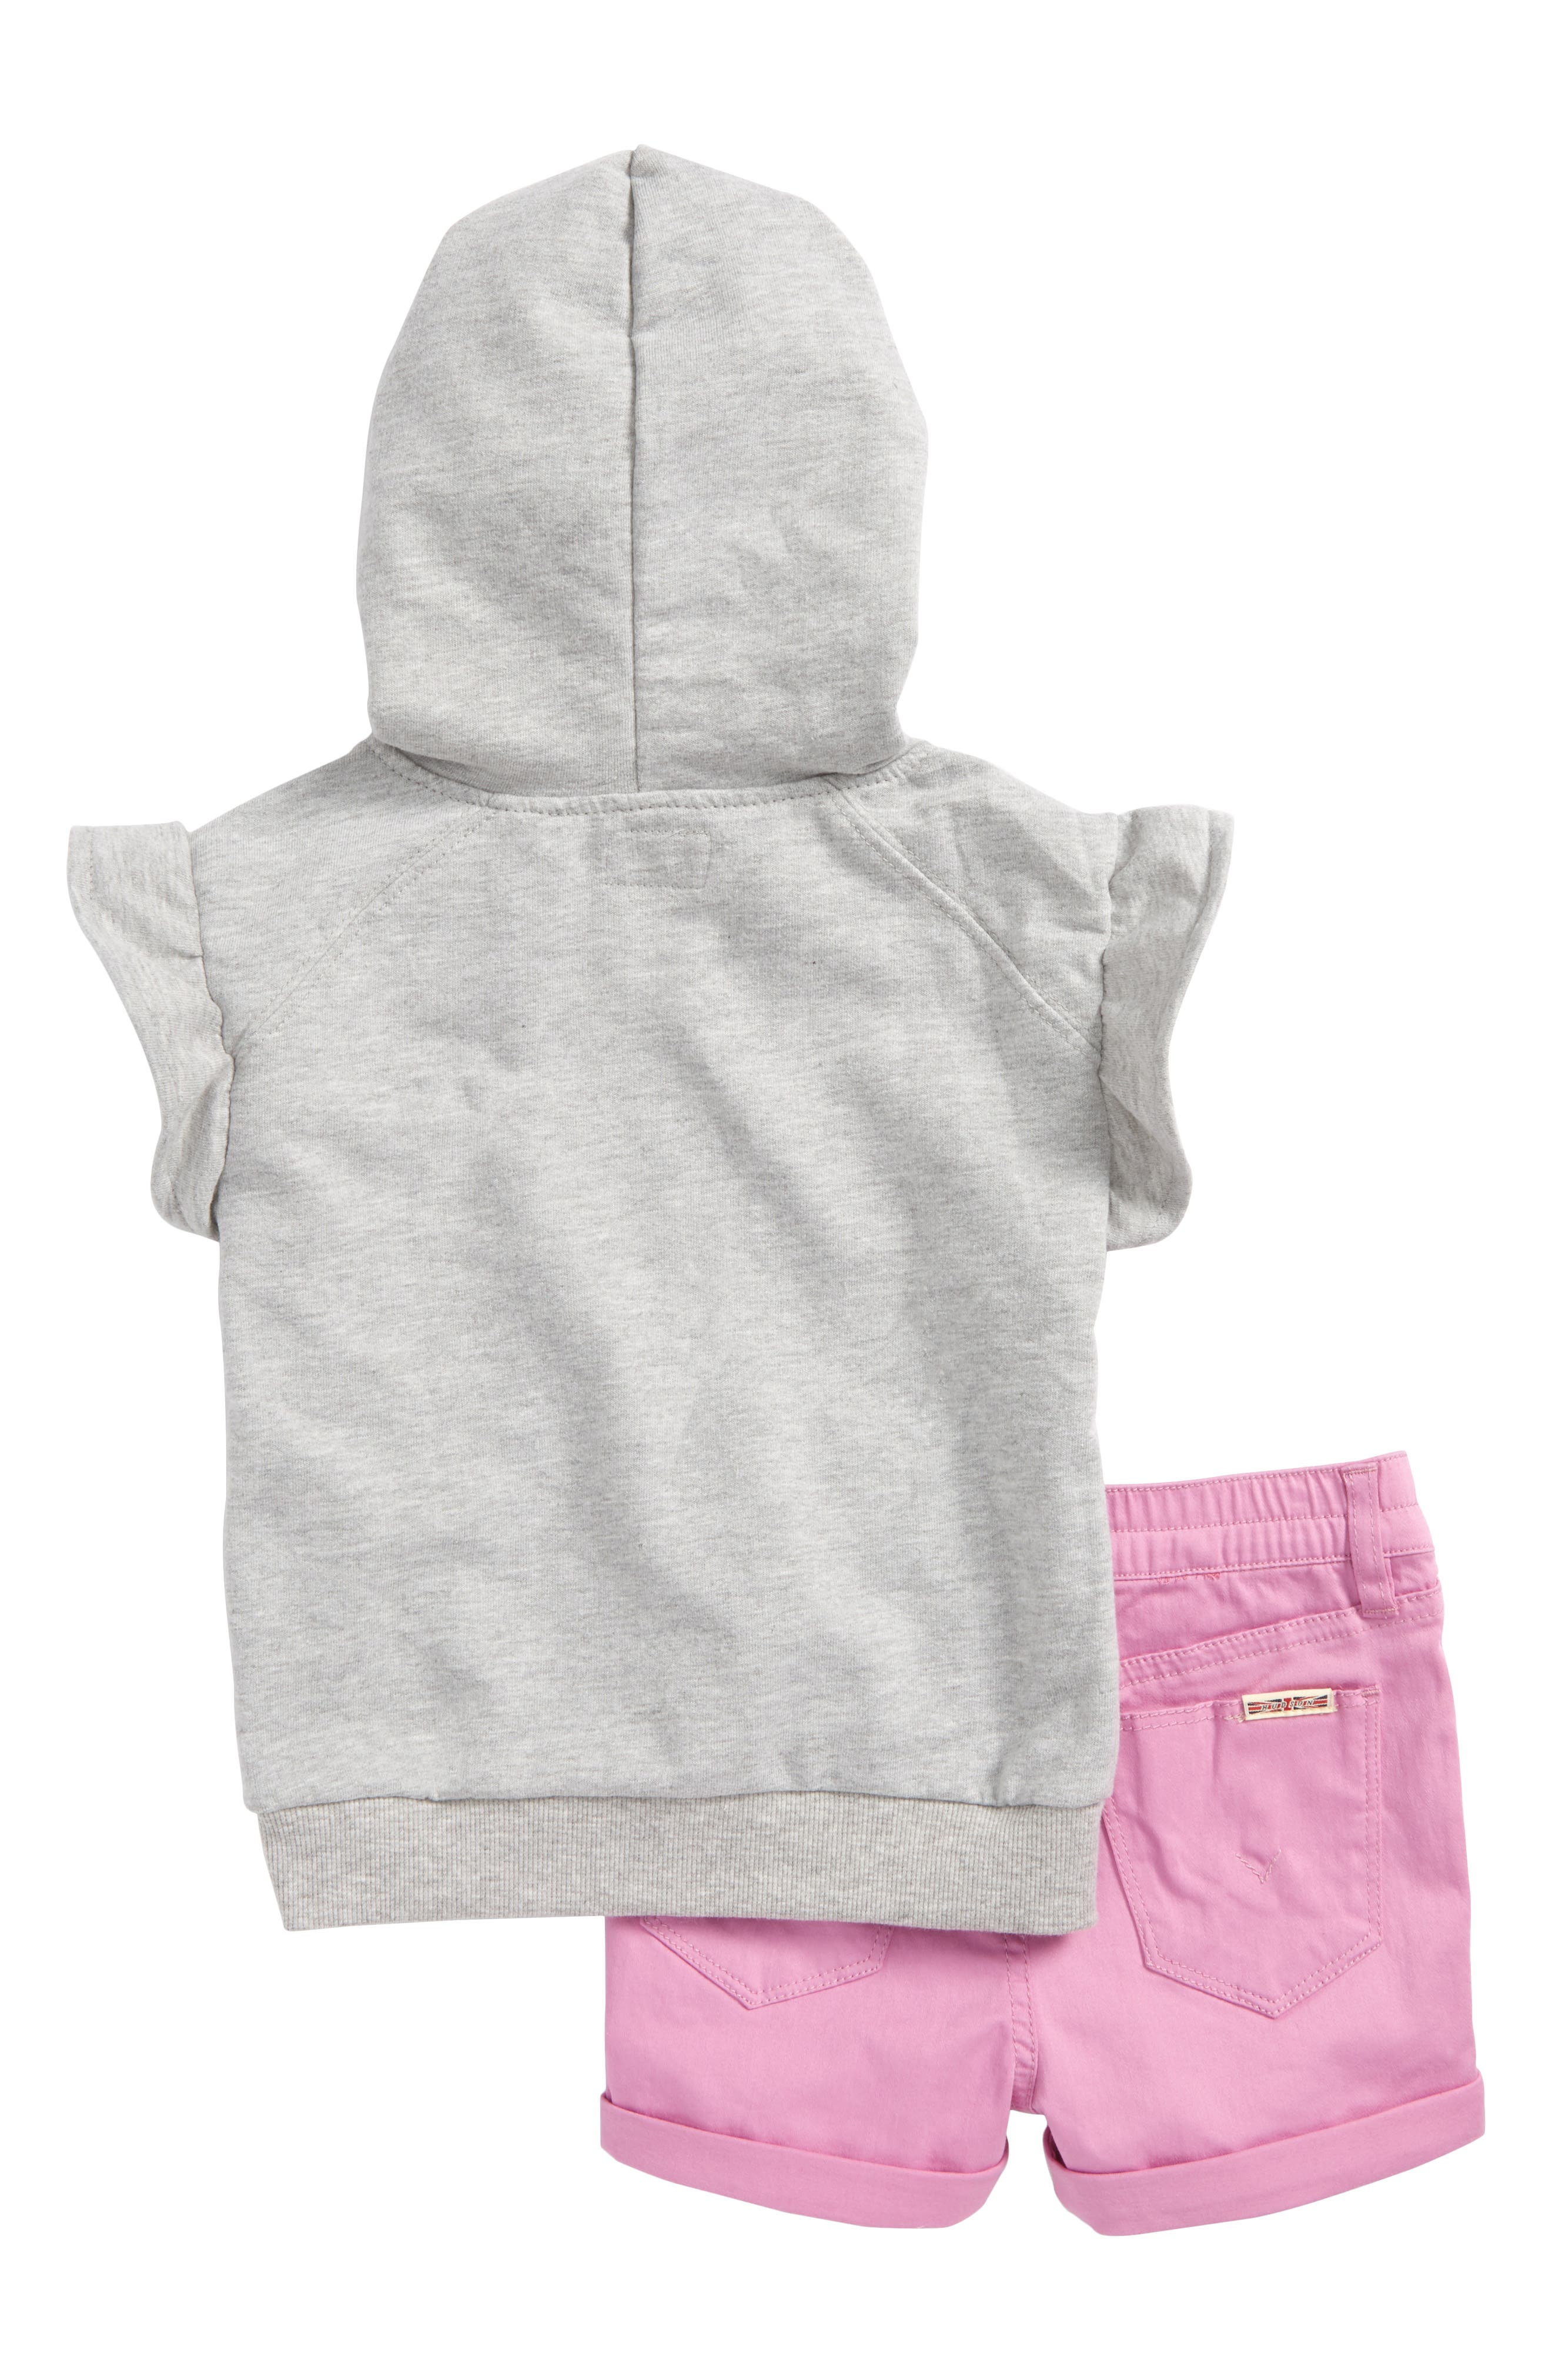 Embroidered Hoodie & Shorts Set,                             Alternate thumbnail 2, color,